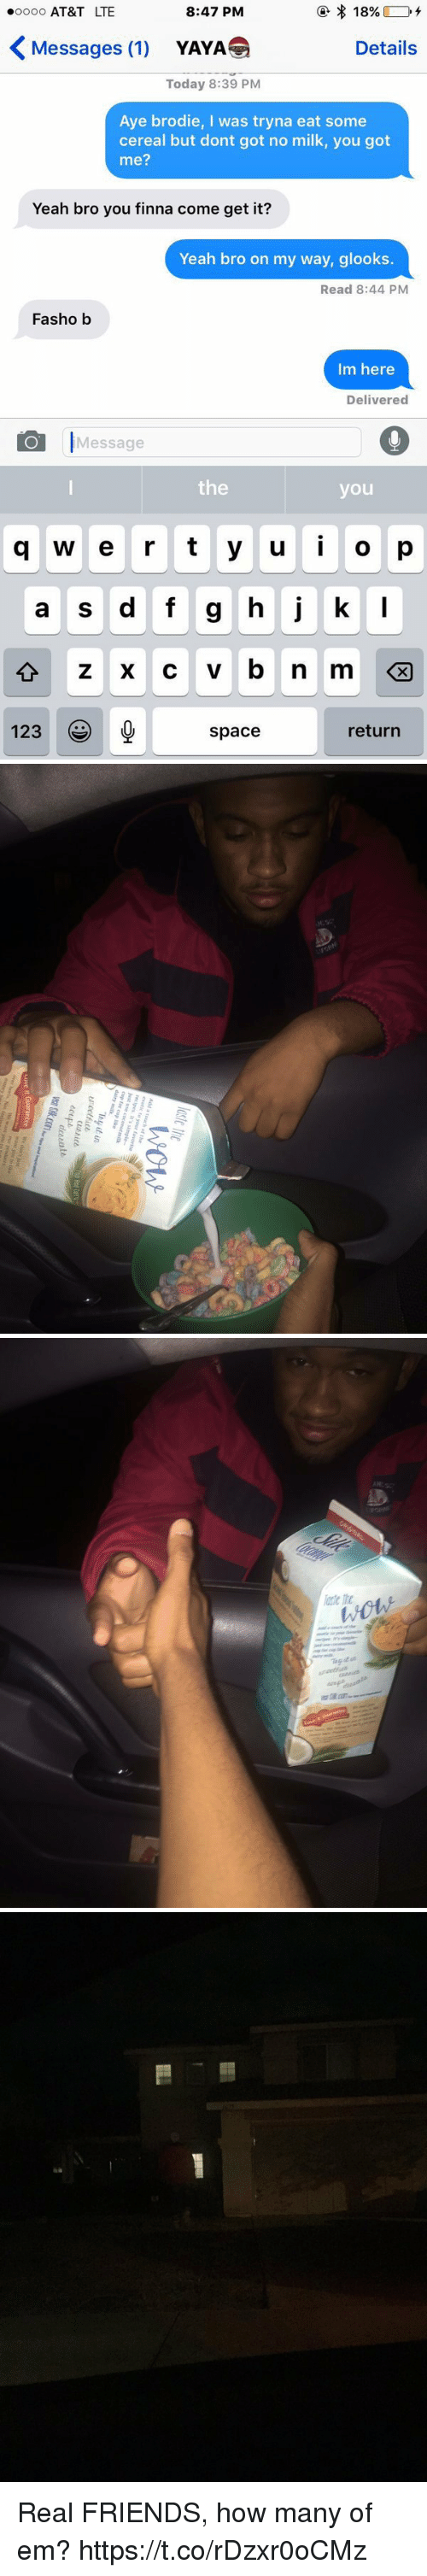 yaya: 18%  8:47 PM  ooooo AT&T LTE  Messages (1)  Details  YAYA  Today 8:39 PM  Aye brodie, I was tryna eat some  cereal but dont got no milk, you got  me?  Yeah bro you finna come get it?  Yeah bro on my way, glooks  Read 8:44 PM  Fasho b  Im here  Delivered  O Message  the  you  q w e r t y u i o p  a s d f g h j k  l  123  return  space   lost ite  wow  Add at  to your favorite  recipes It's simple-  just use coconutmilk  cup for cup like  Thy止迅  Thy it in  ur.cotfuet  U'octfitΔ  Tha Red Dry  (UlitL  Lahia  ect-F deeb  ecupidees业  dee atte  Vsat Silkcon.orws and  Lovett Guarantee  We den't just  Pur products   iti   cs Real FRIENDS, how many of em? https://t.co/rDzxr0oCMz